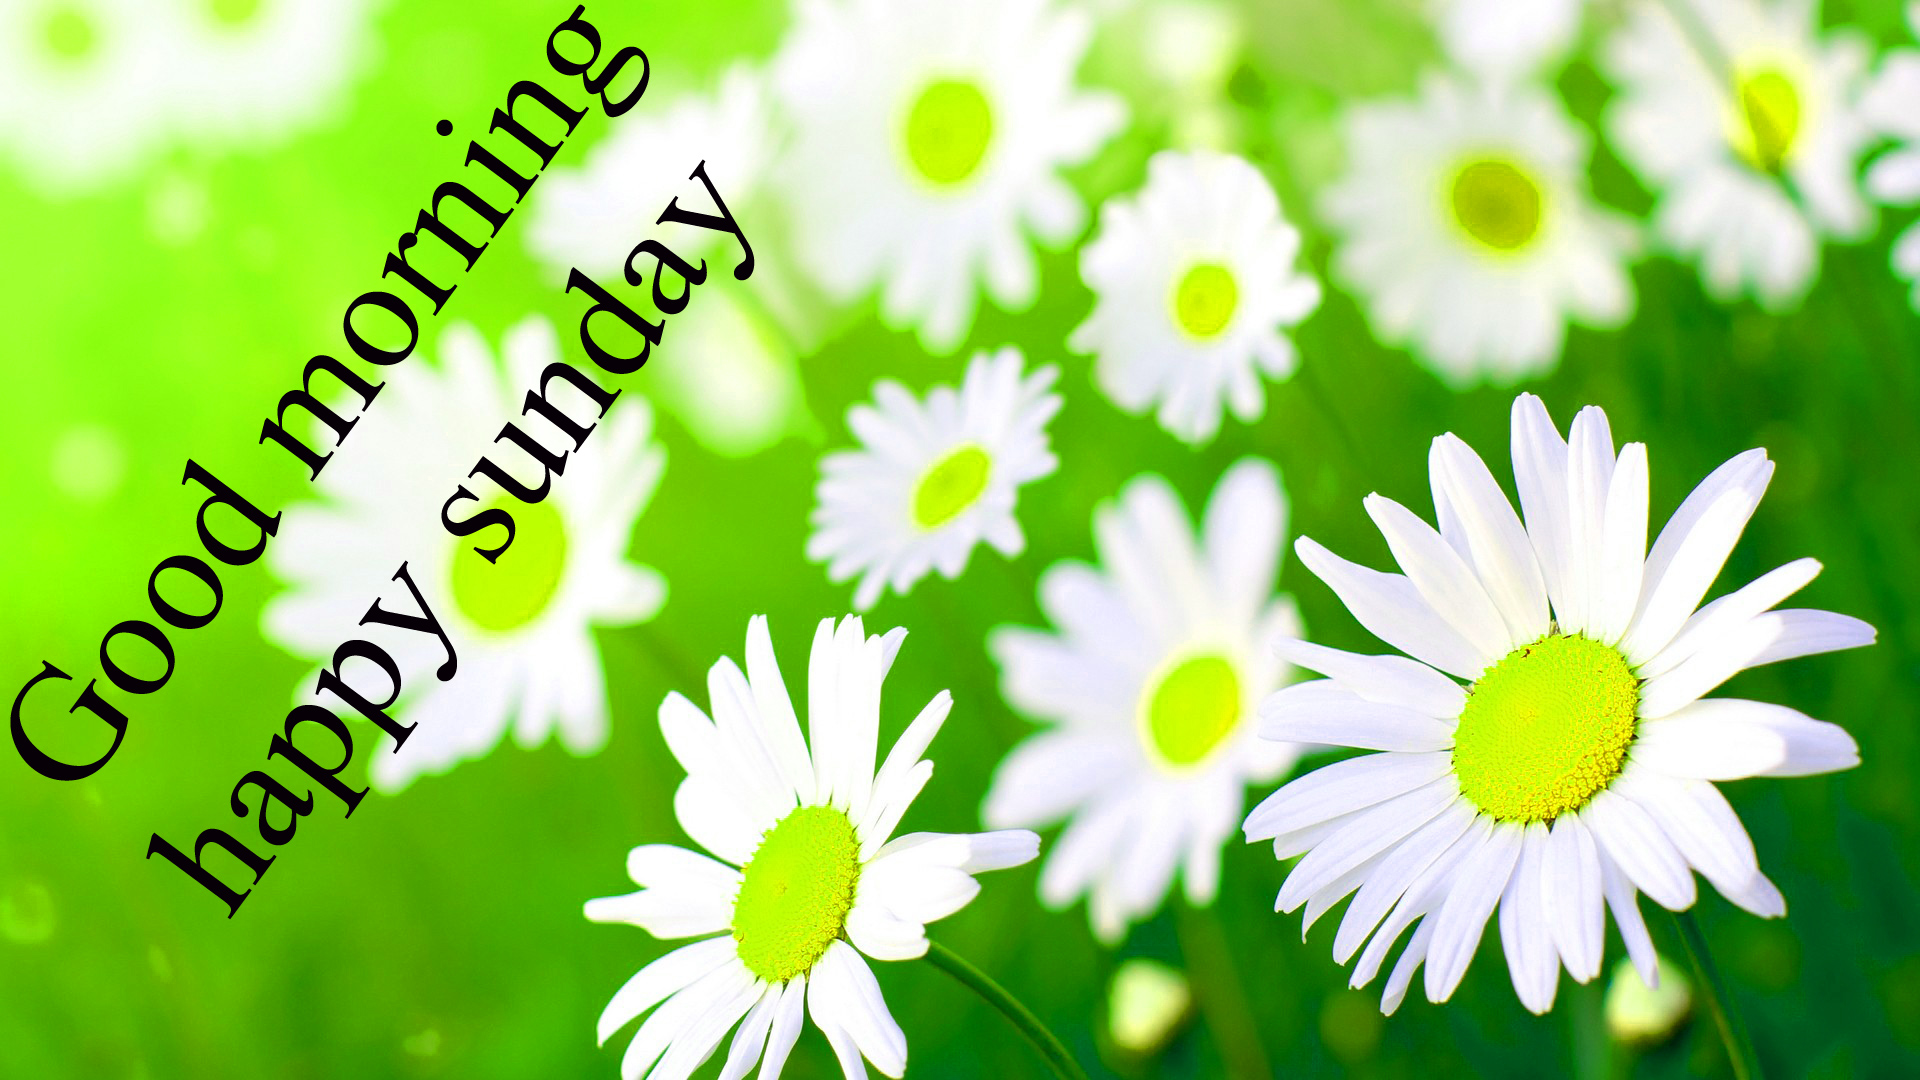 Sunday Good Morning Images Wallpaper Photo Pics Download